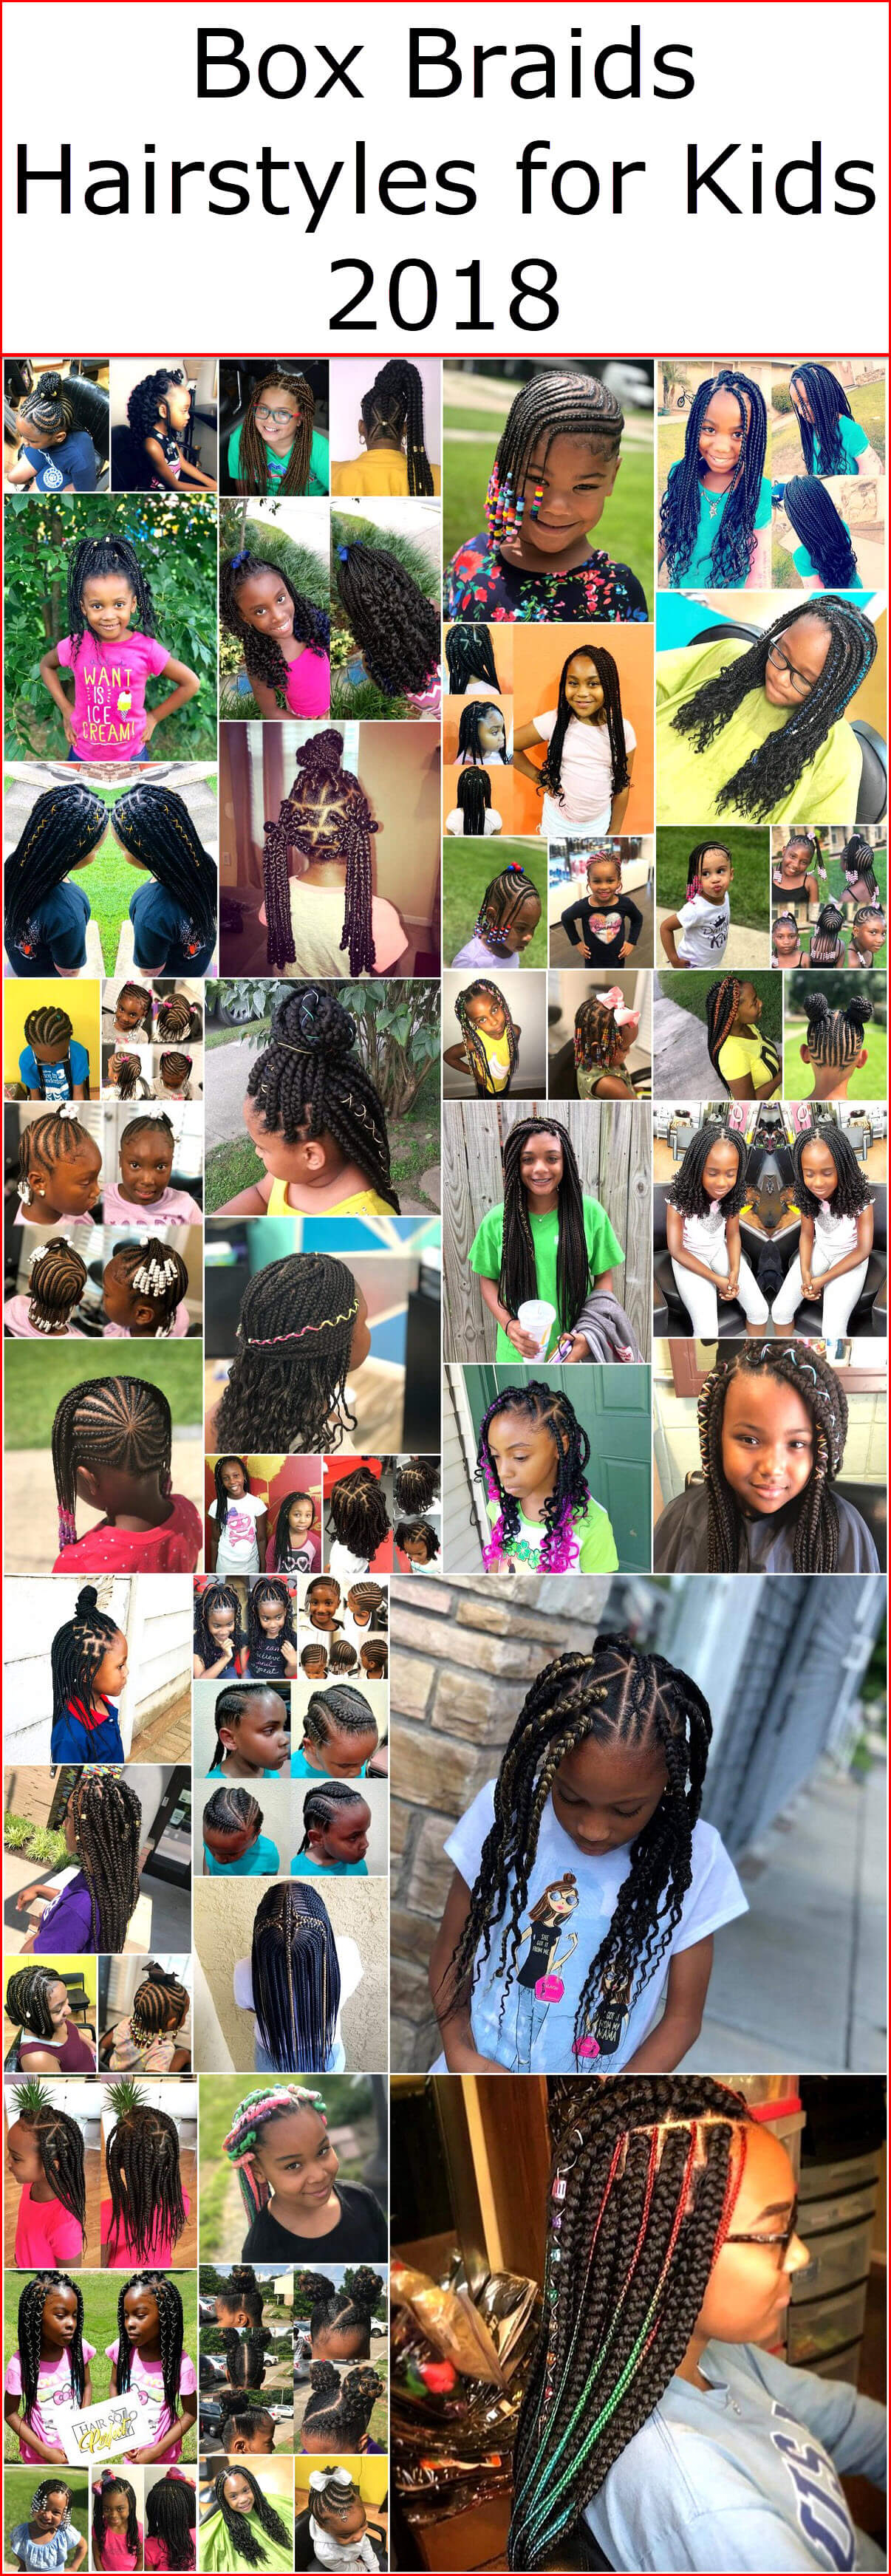 Box Braids Hairstyles For Kids 2018 Kids Hairstyle Haircut Ideas Designs And Diy